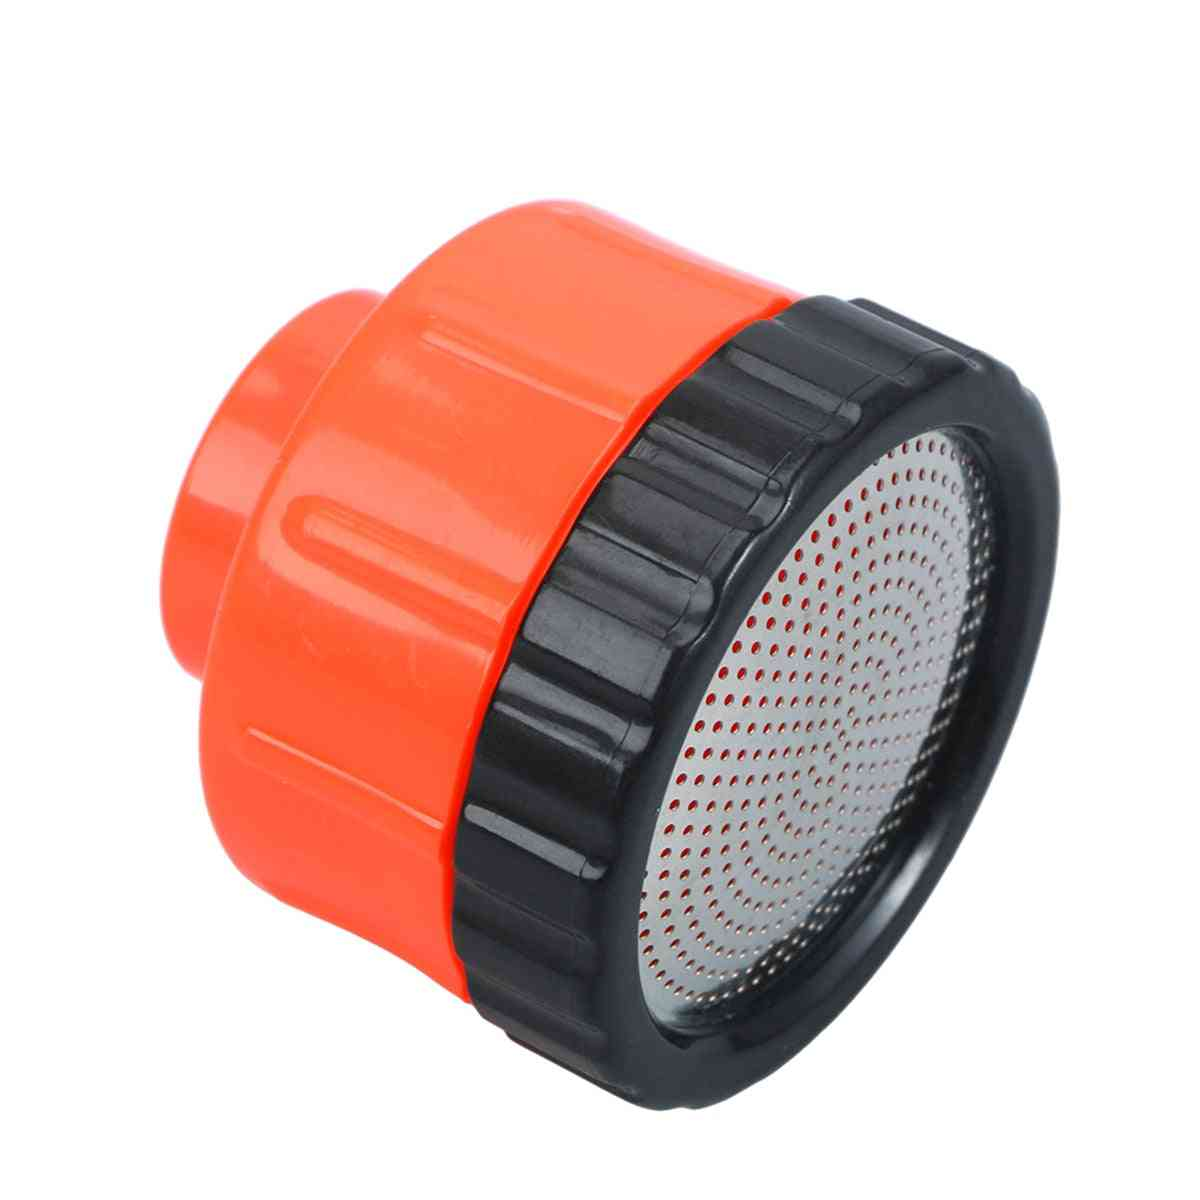 Plastic Water Breaker Nozzle With 400 Tiny Holes And Stainless Steel Disc